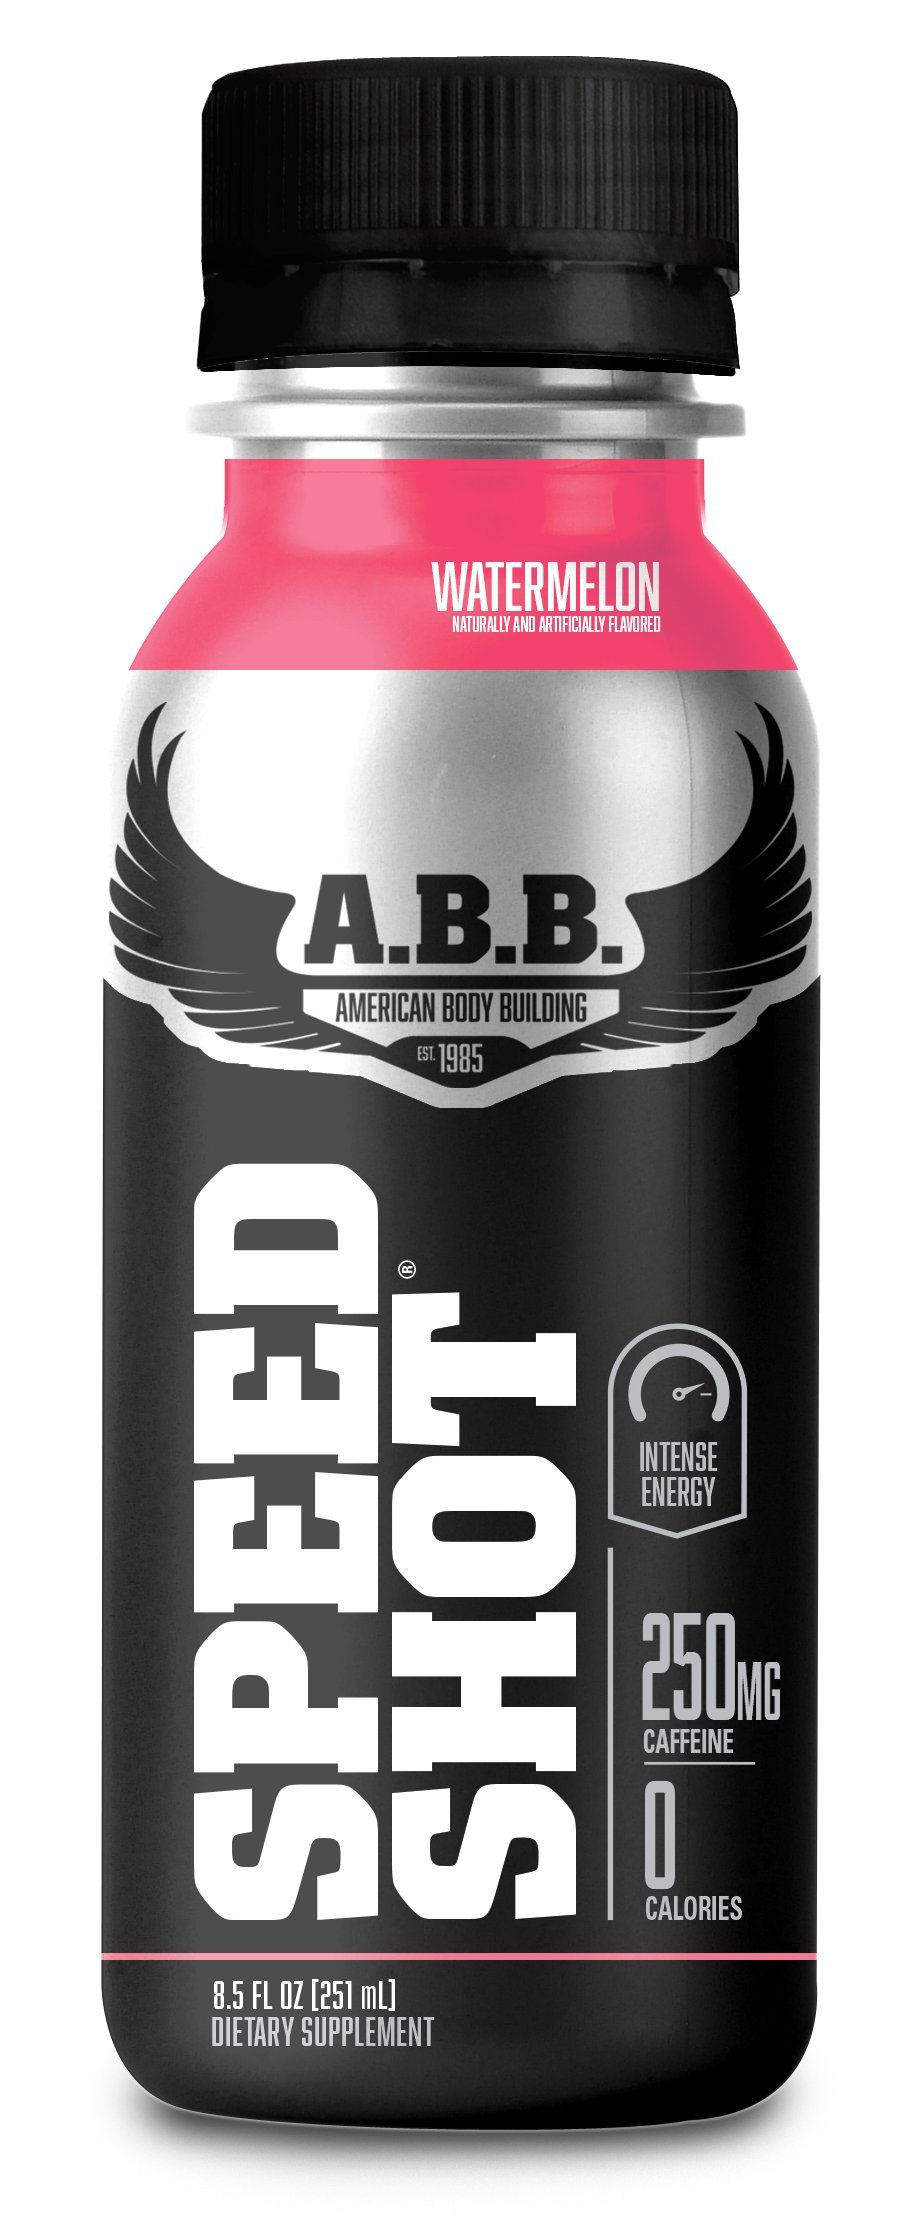 ABB Speed Shot, Watermelon, Energy Drink with 250mg of Caffeine, 12 Count